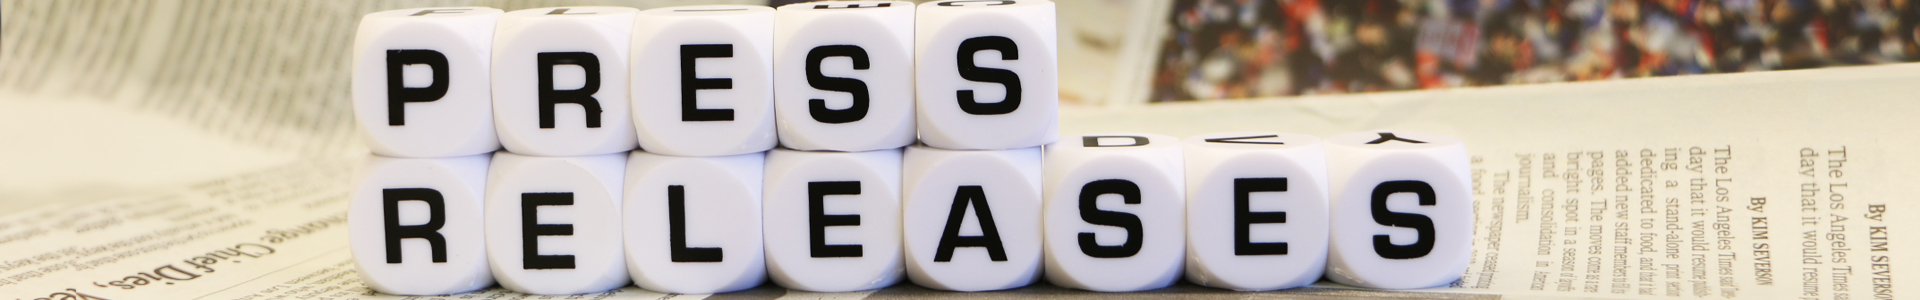 cubes with words Press Release on them